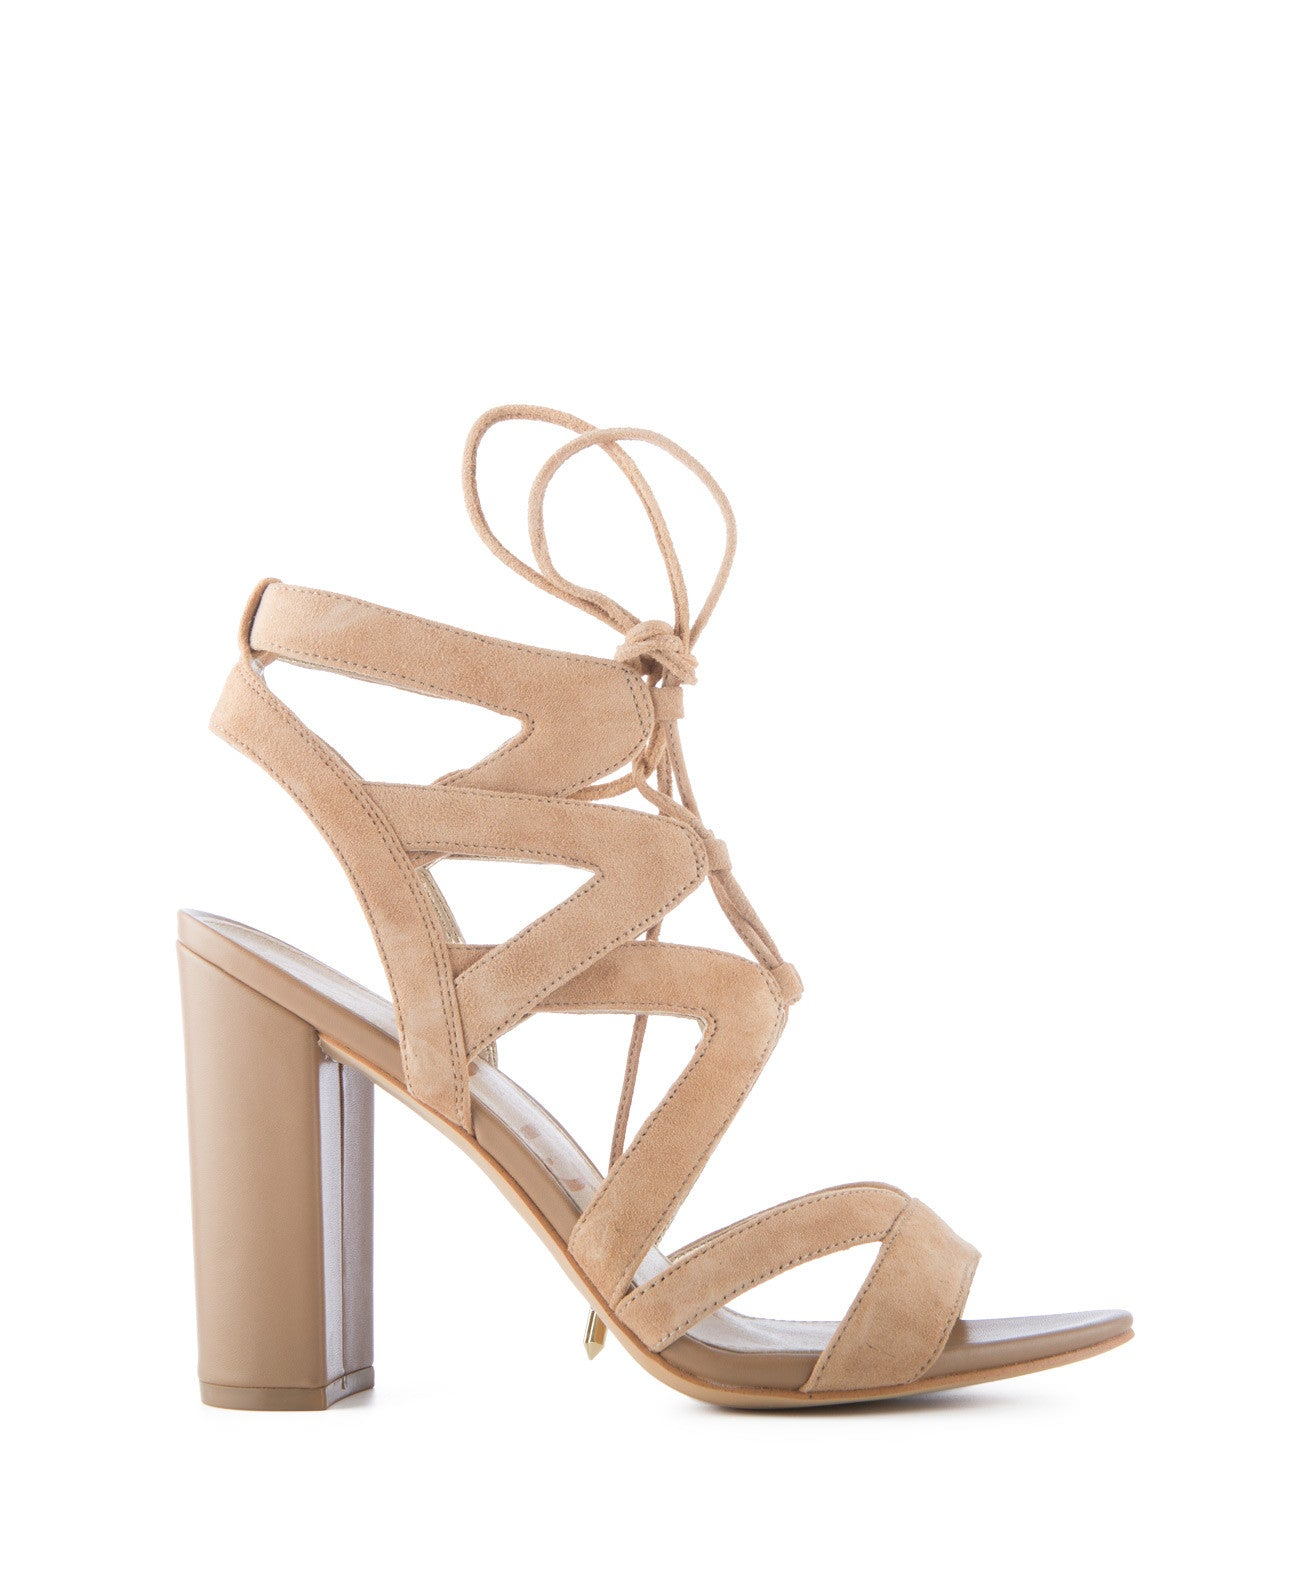 Yardley Cut-Out Sandals - Koko & Palenki - 1